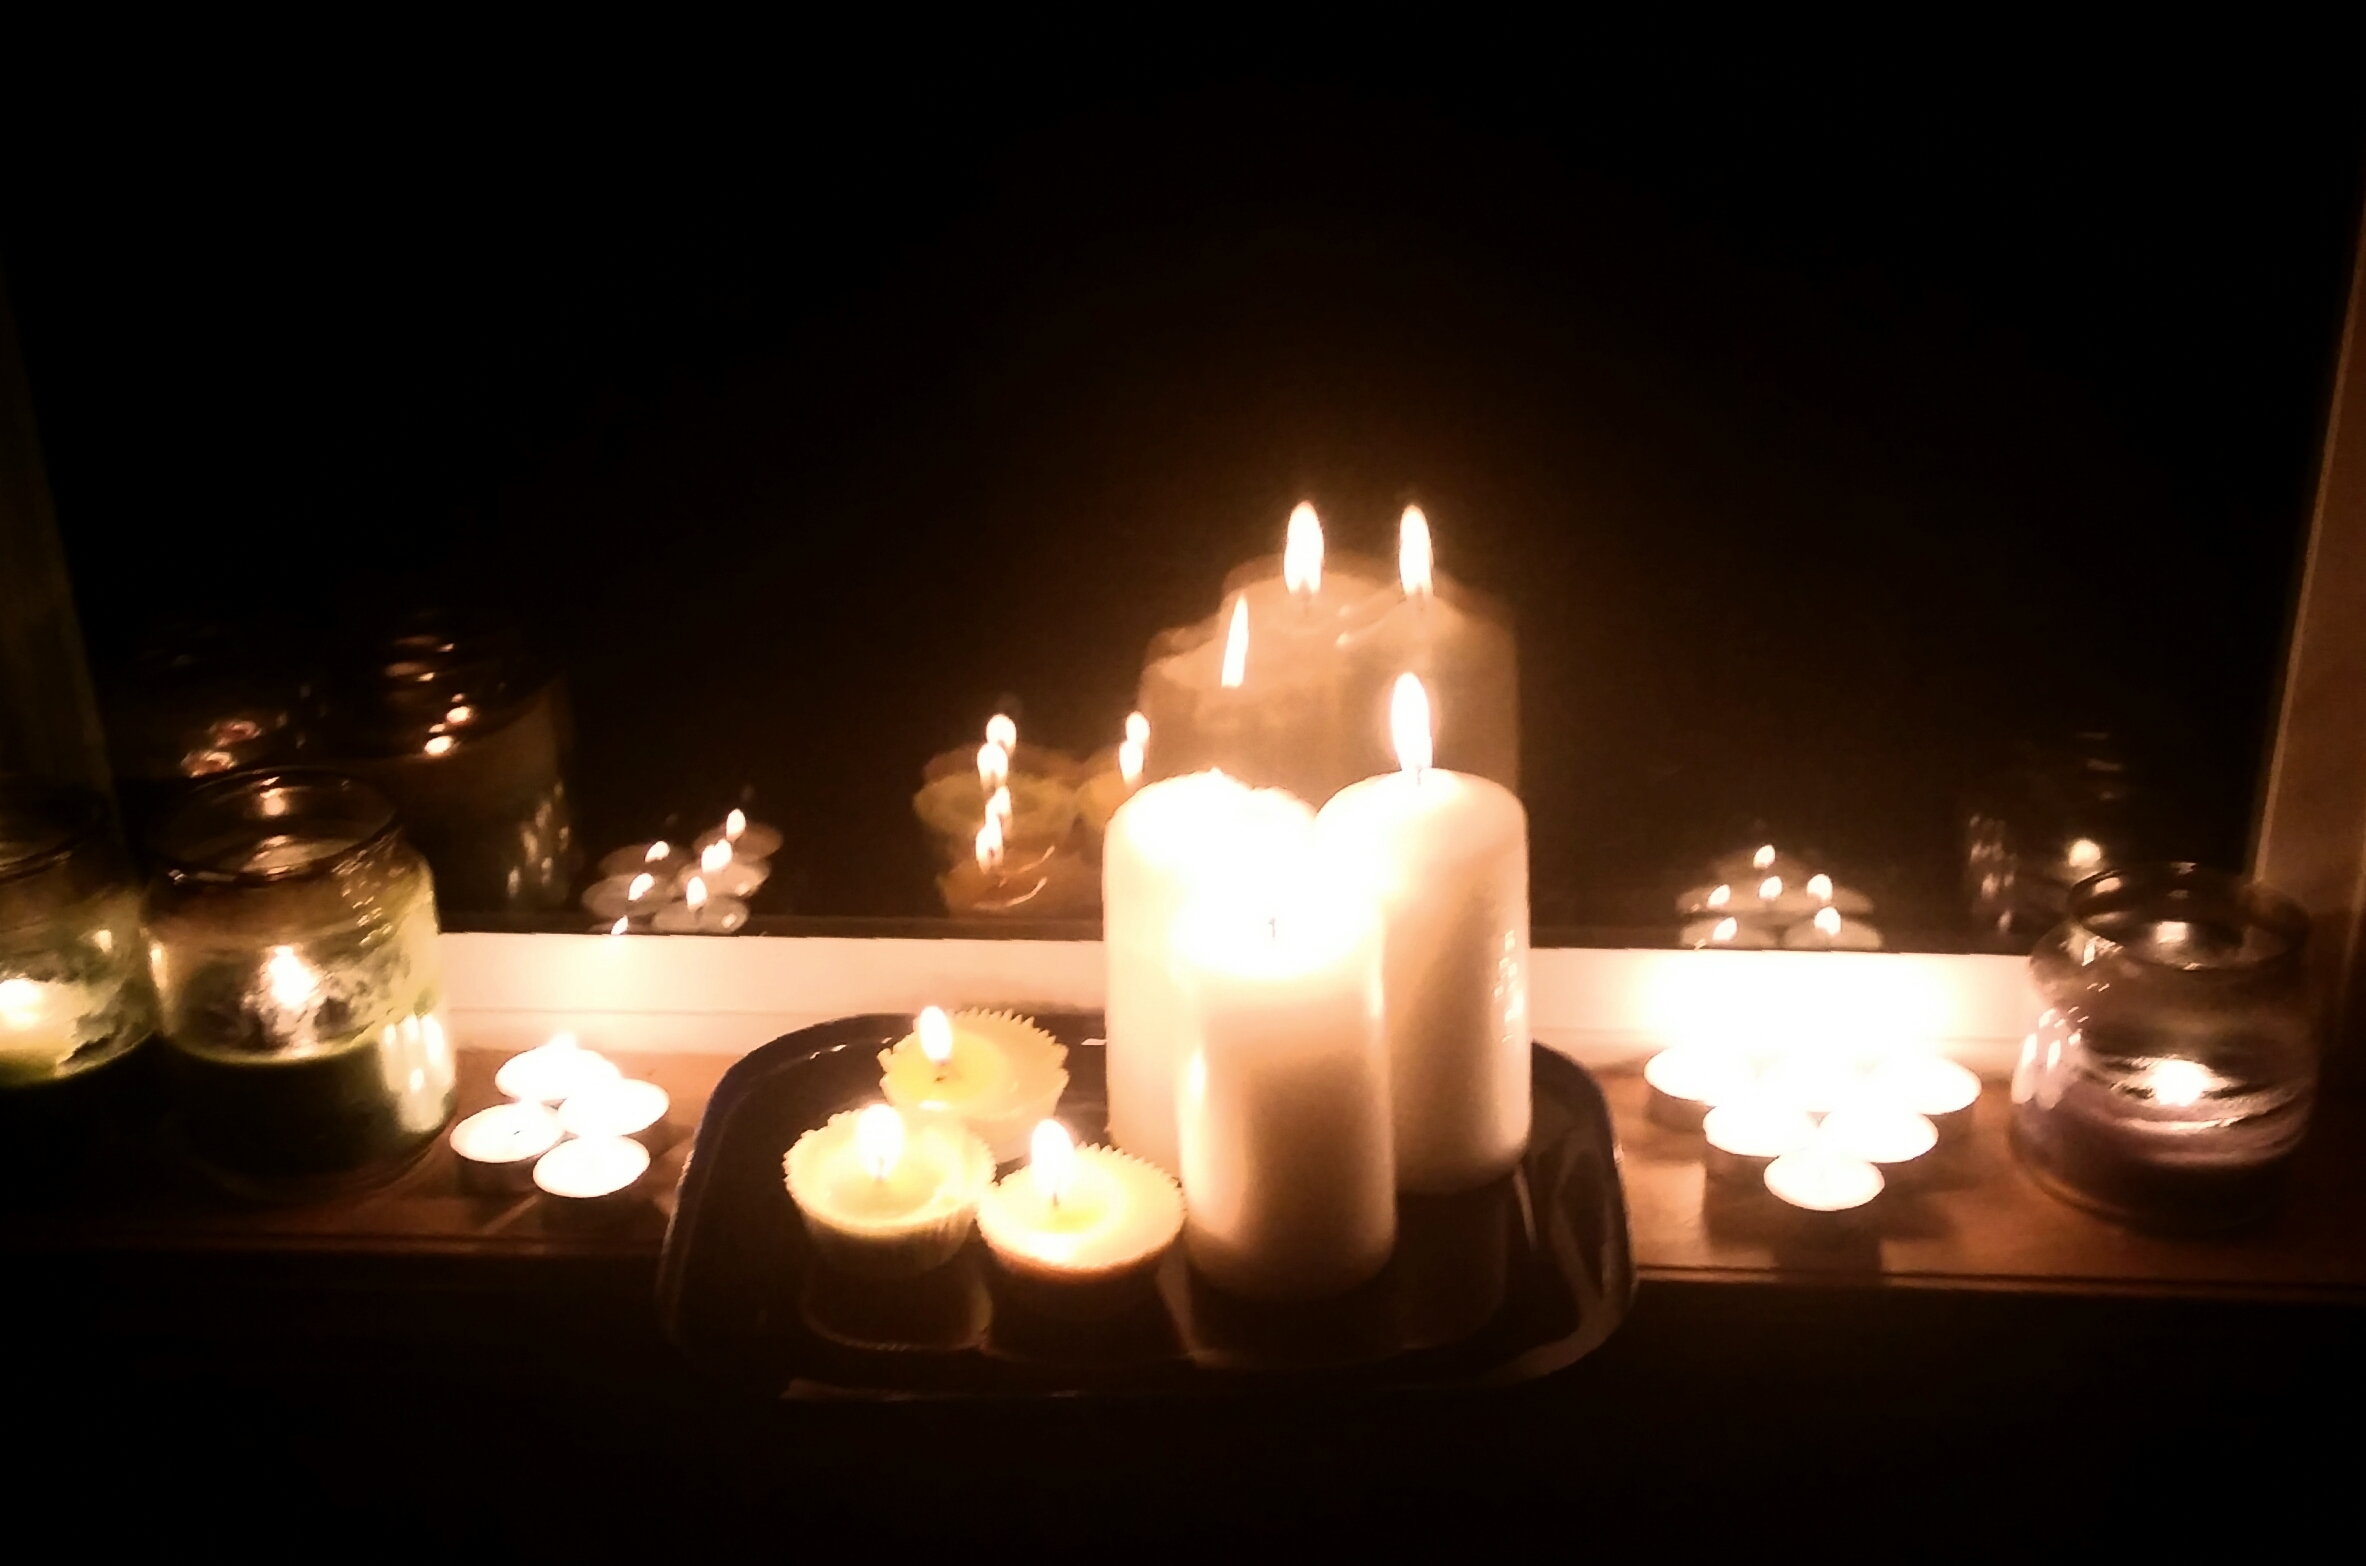 candles set up on a windowsill provide a golden light contrasted with the surrounding darkness